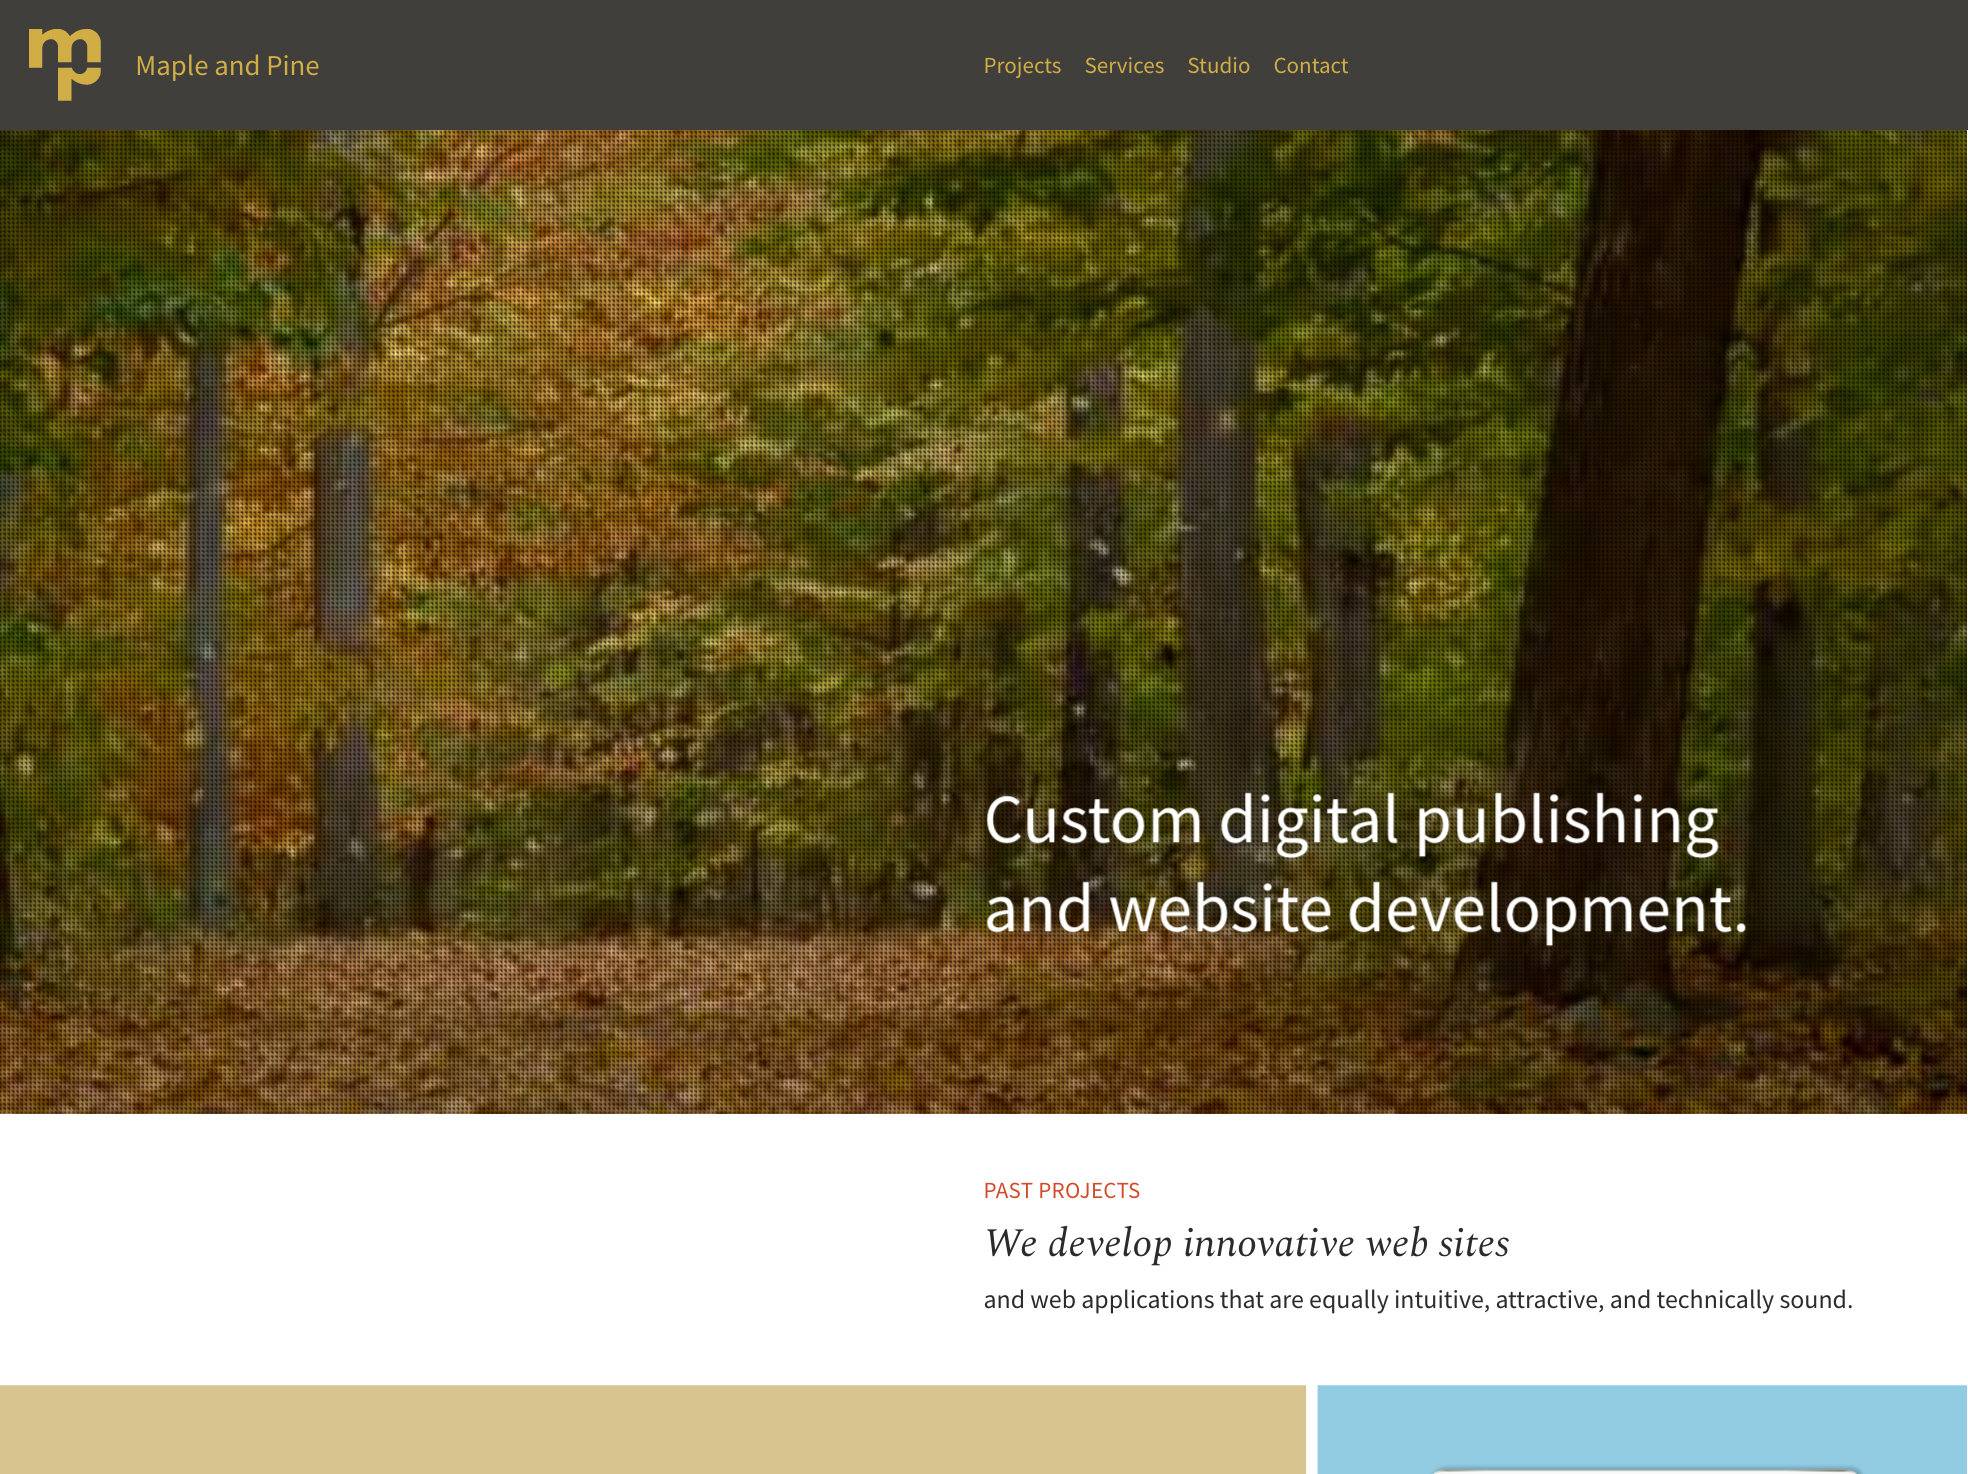 Maple and Pine home page